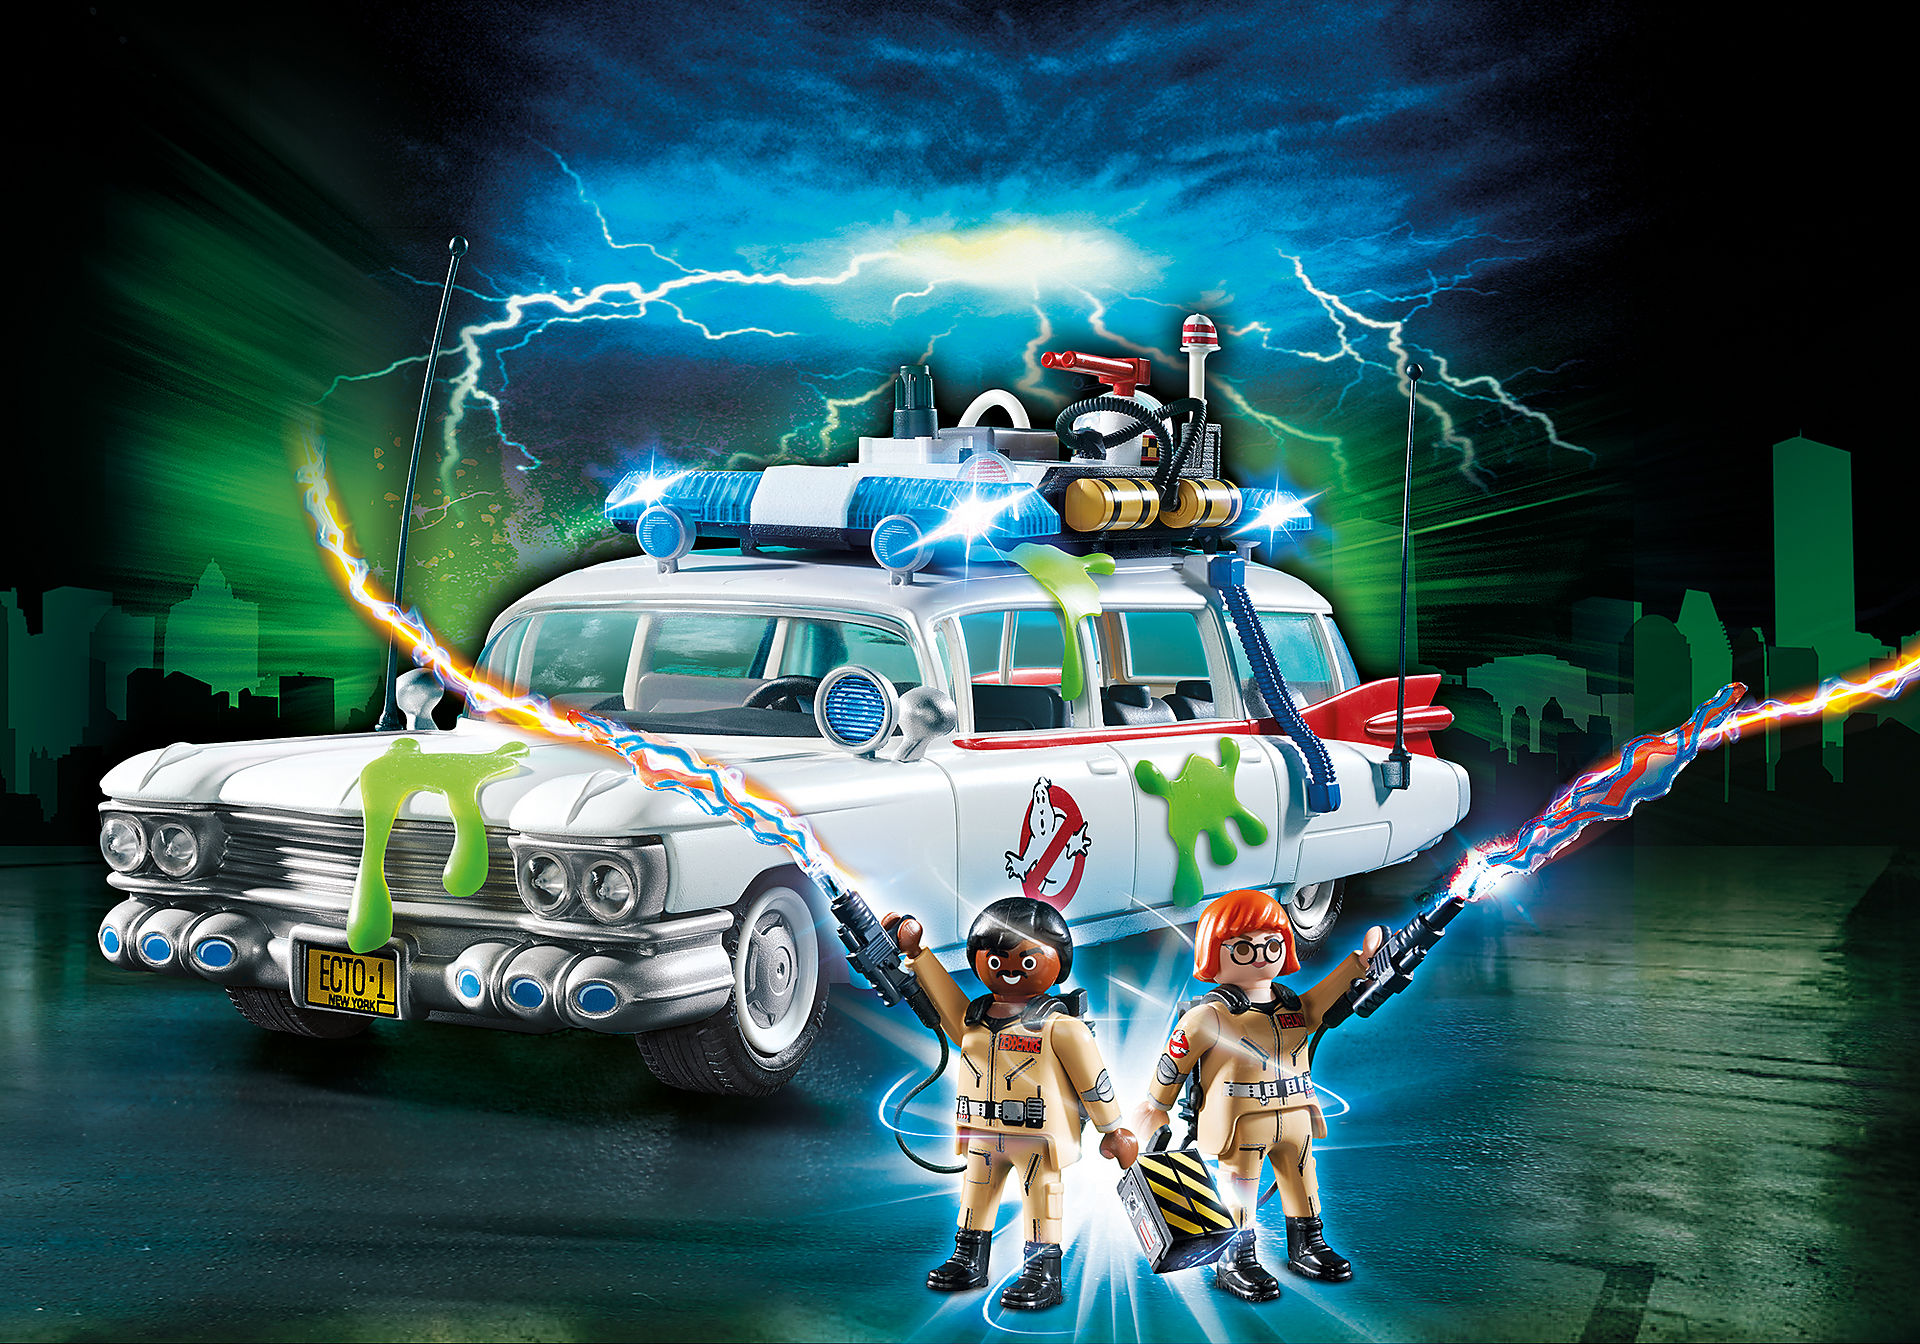 9220 GhostbustersTM Ecto-1 zoom image1